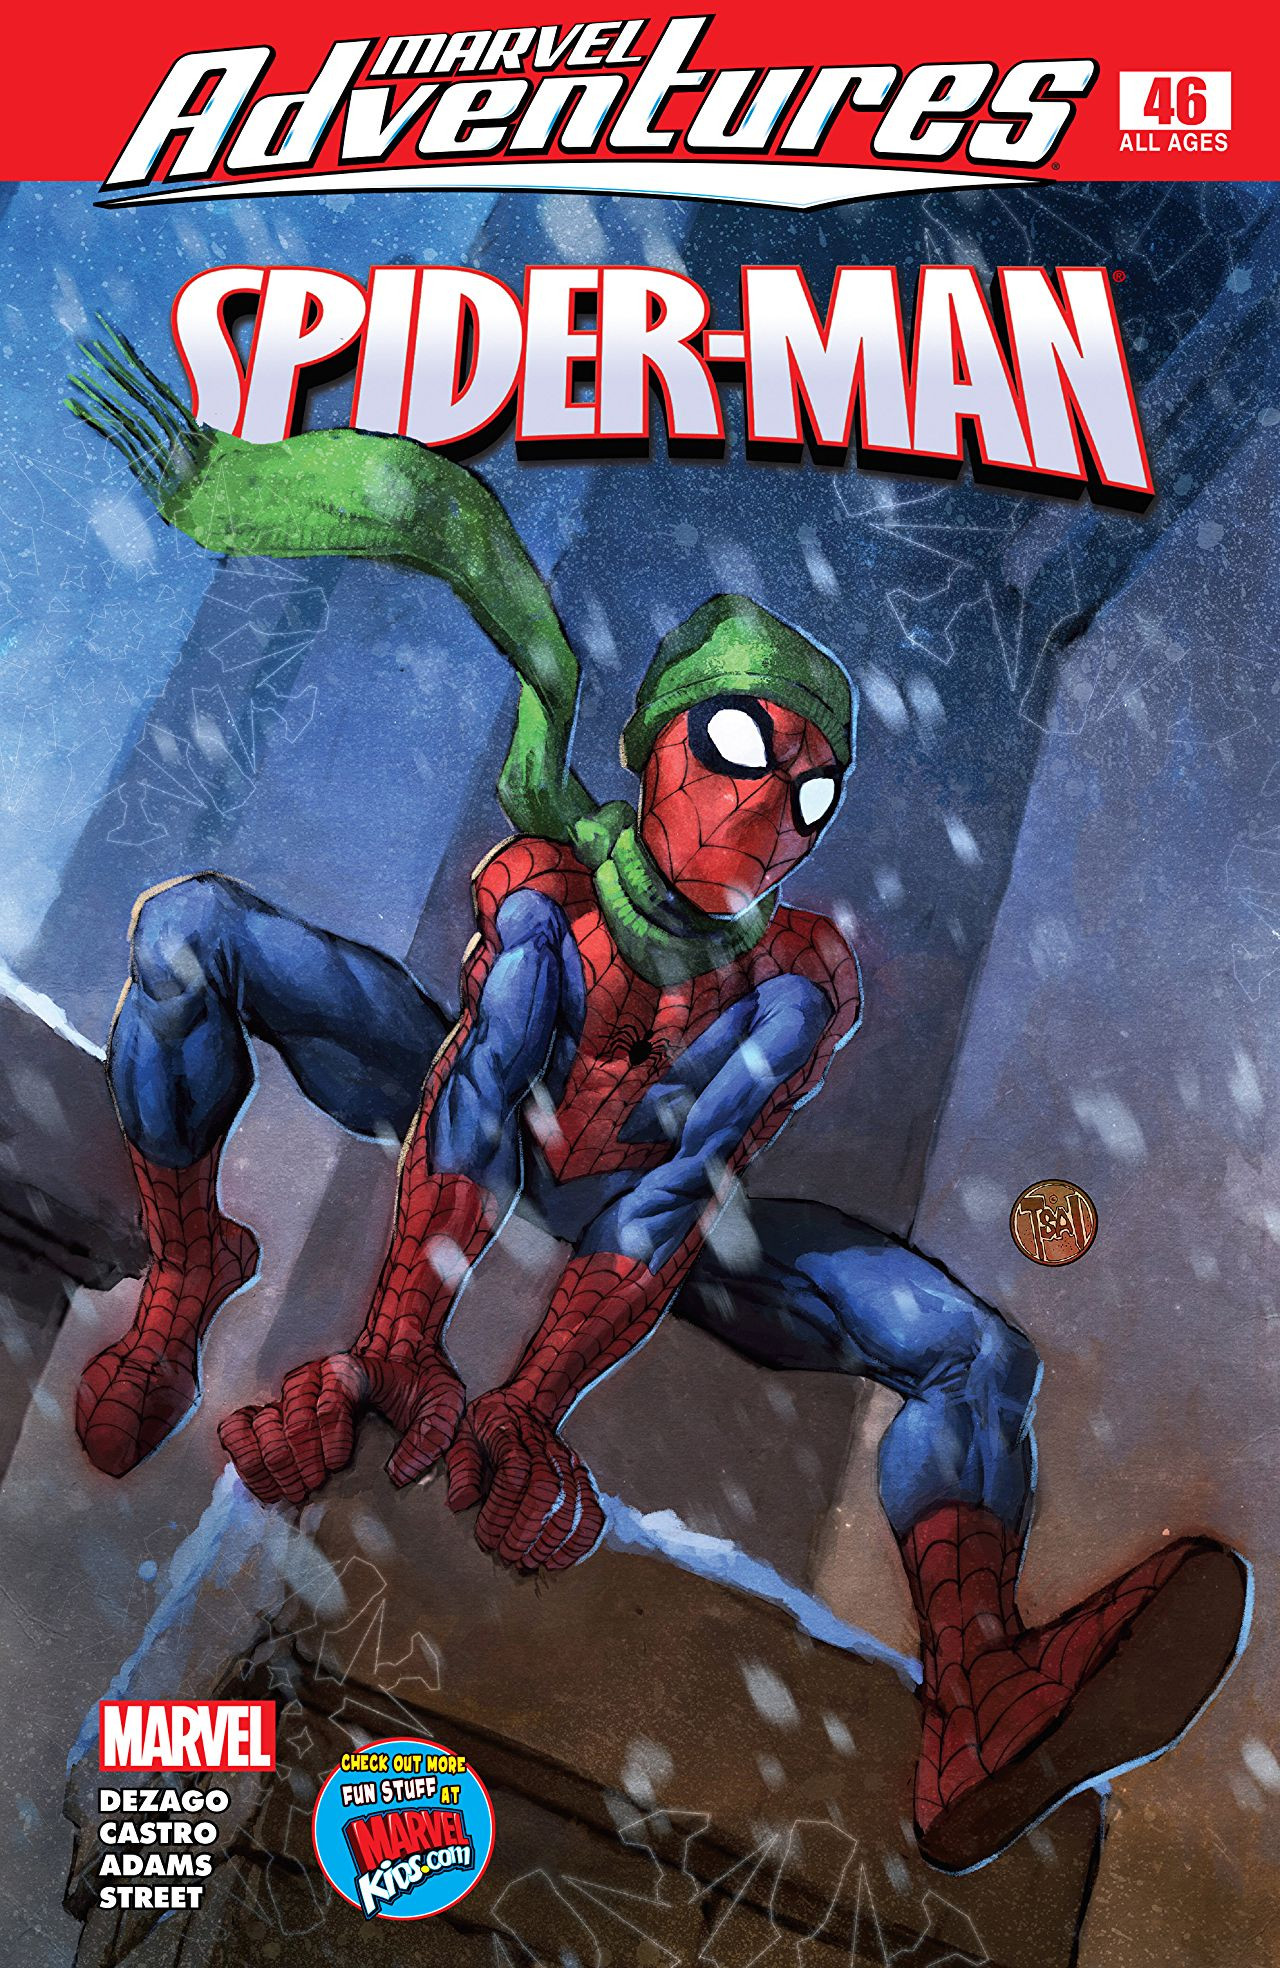 Marvel Adventures: Spider-Man Vol 1 46